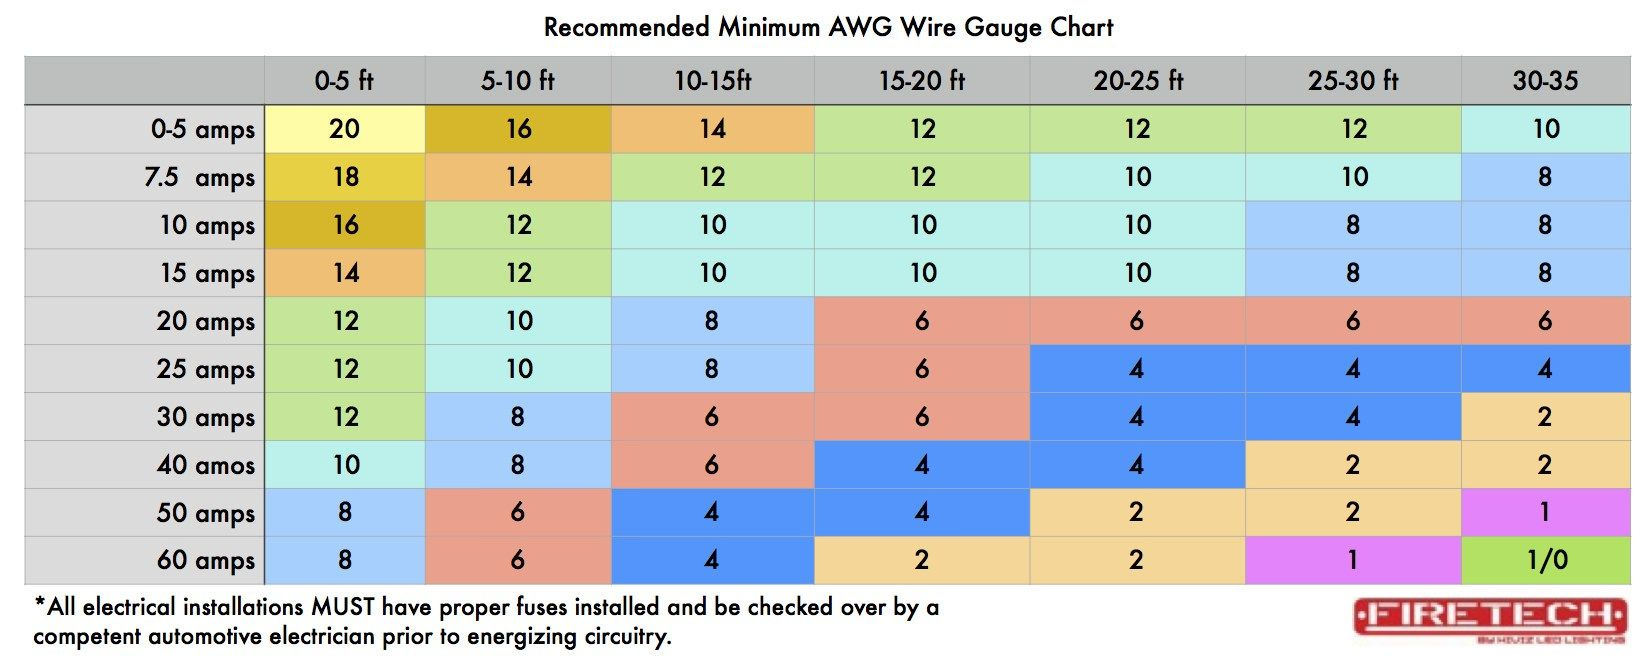 5 amp wire gauge wire center image result for wire size chart wired and switches step by step rh pinterest com electrical wire gauge chart amps 12v 5 amp wire size keyboard keysfo